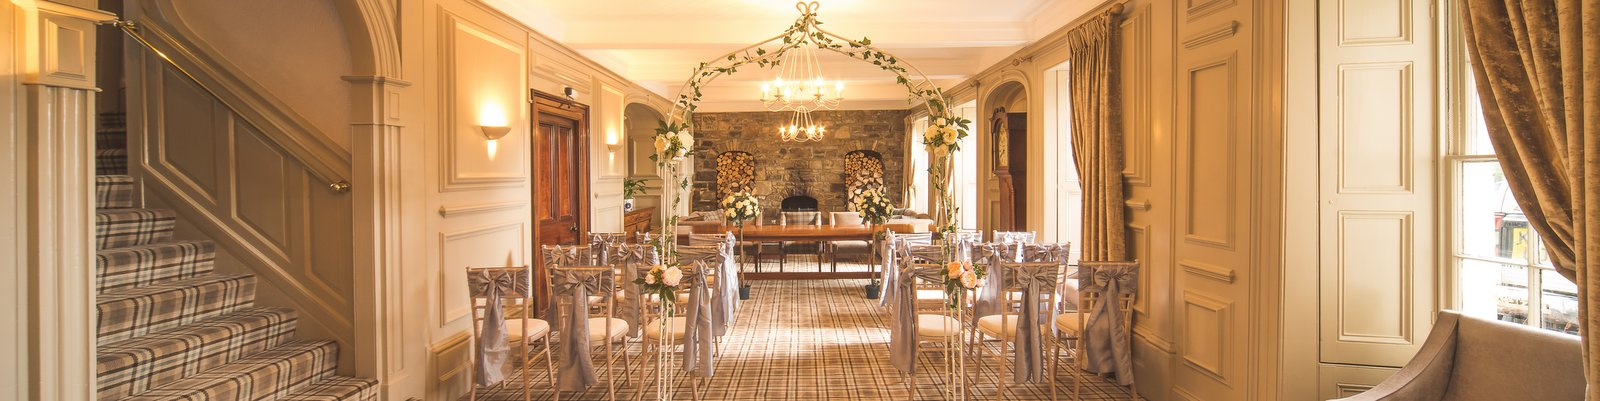 Top hall wedding venue